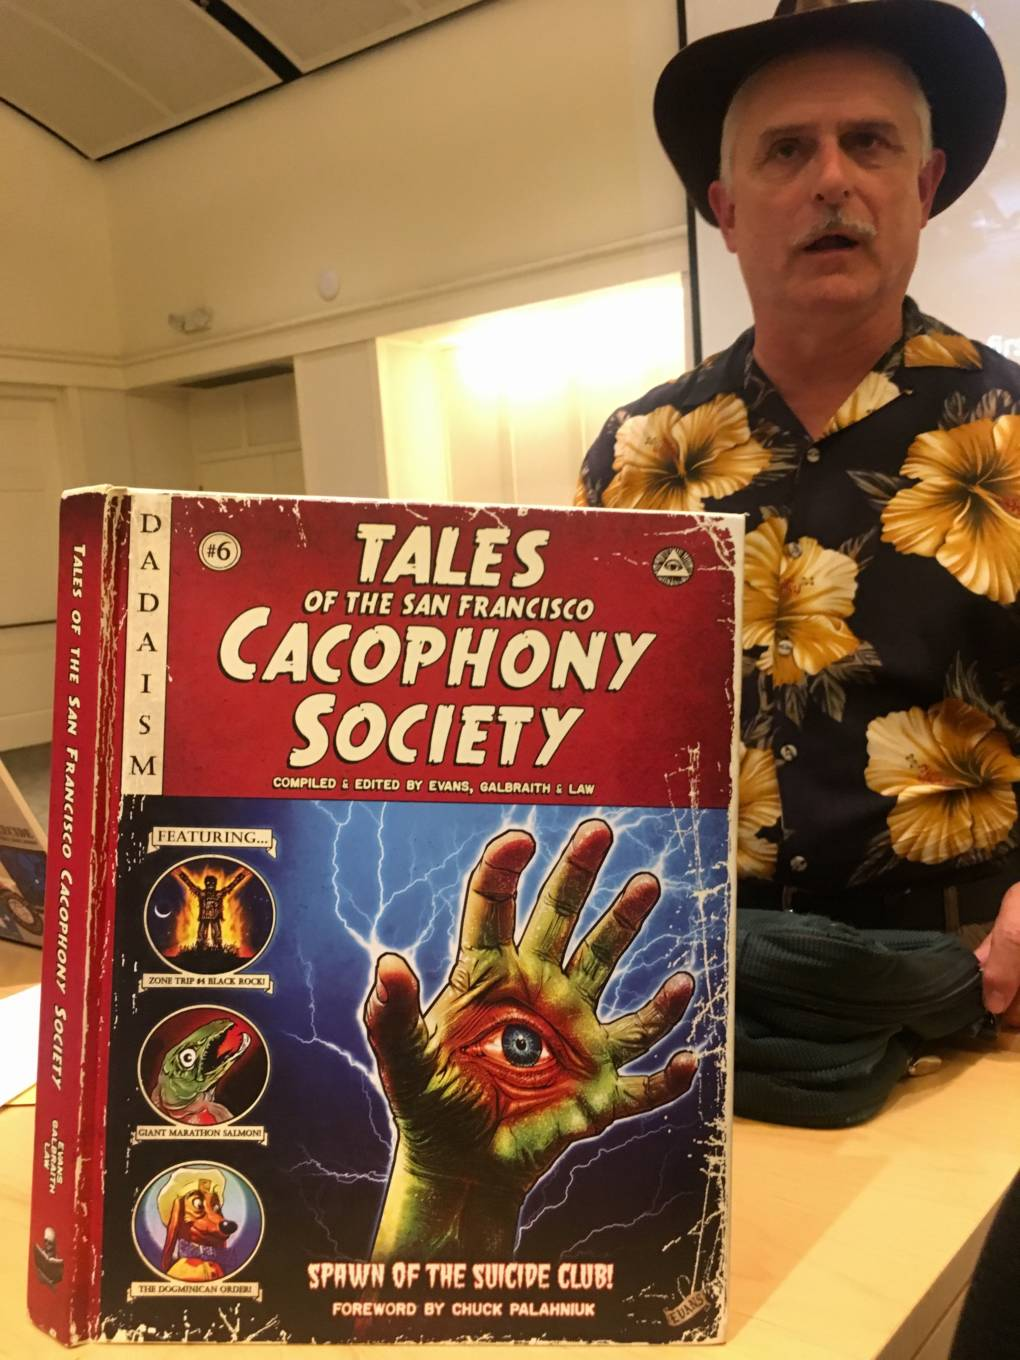 John Law stands behind a book about the Cacophony Society.